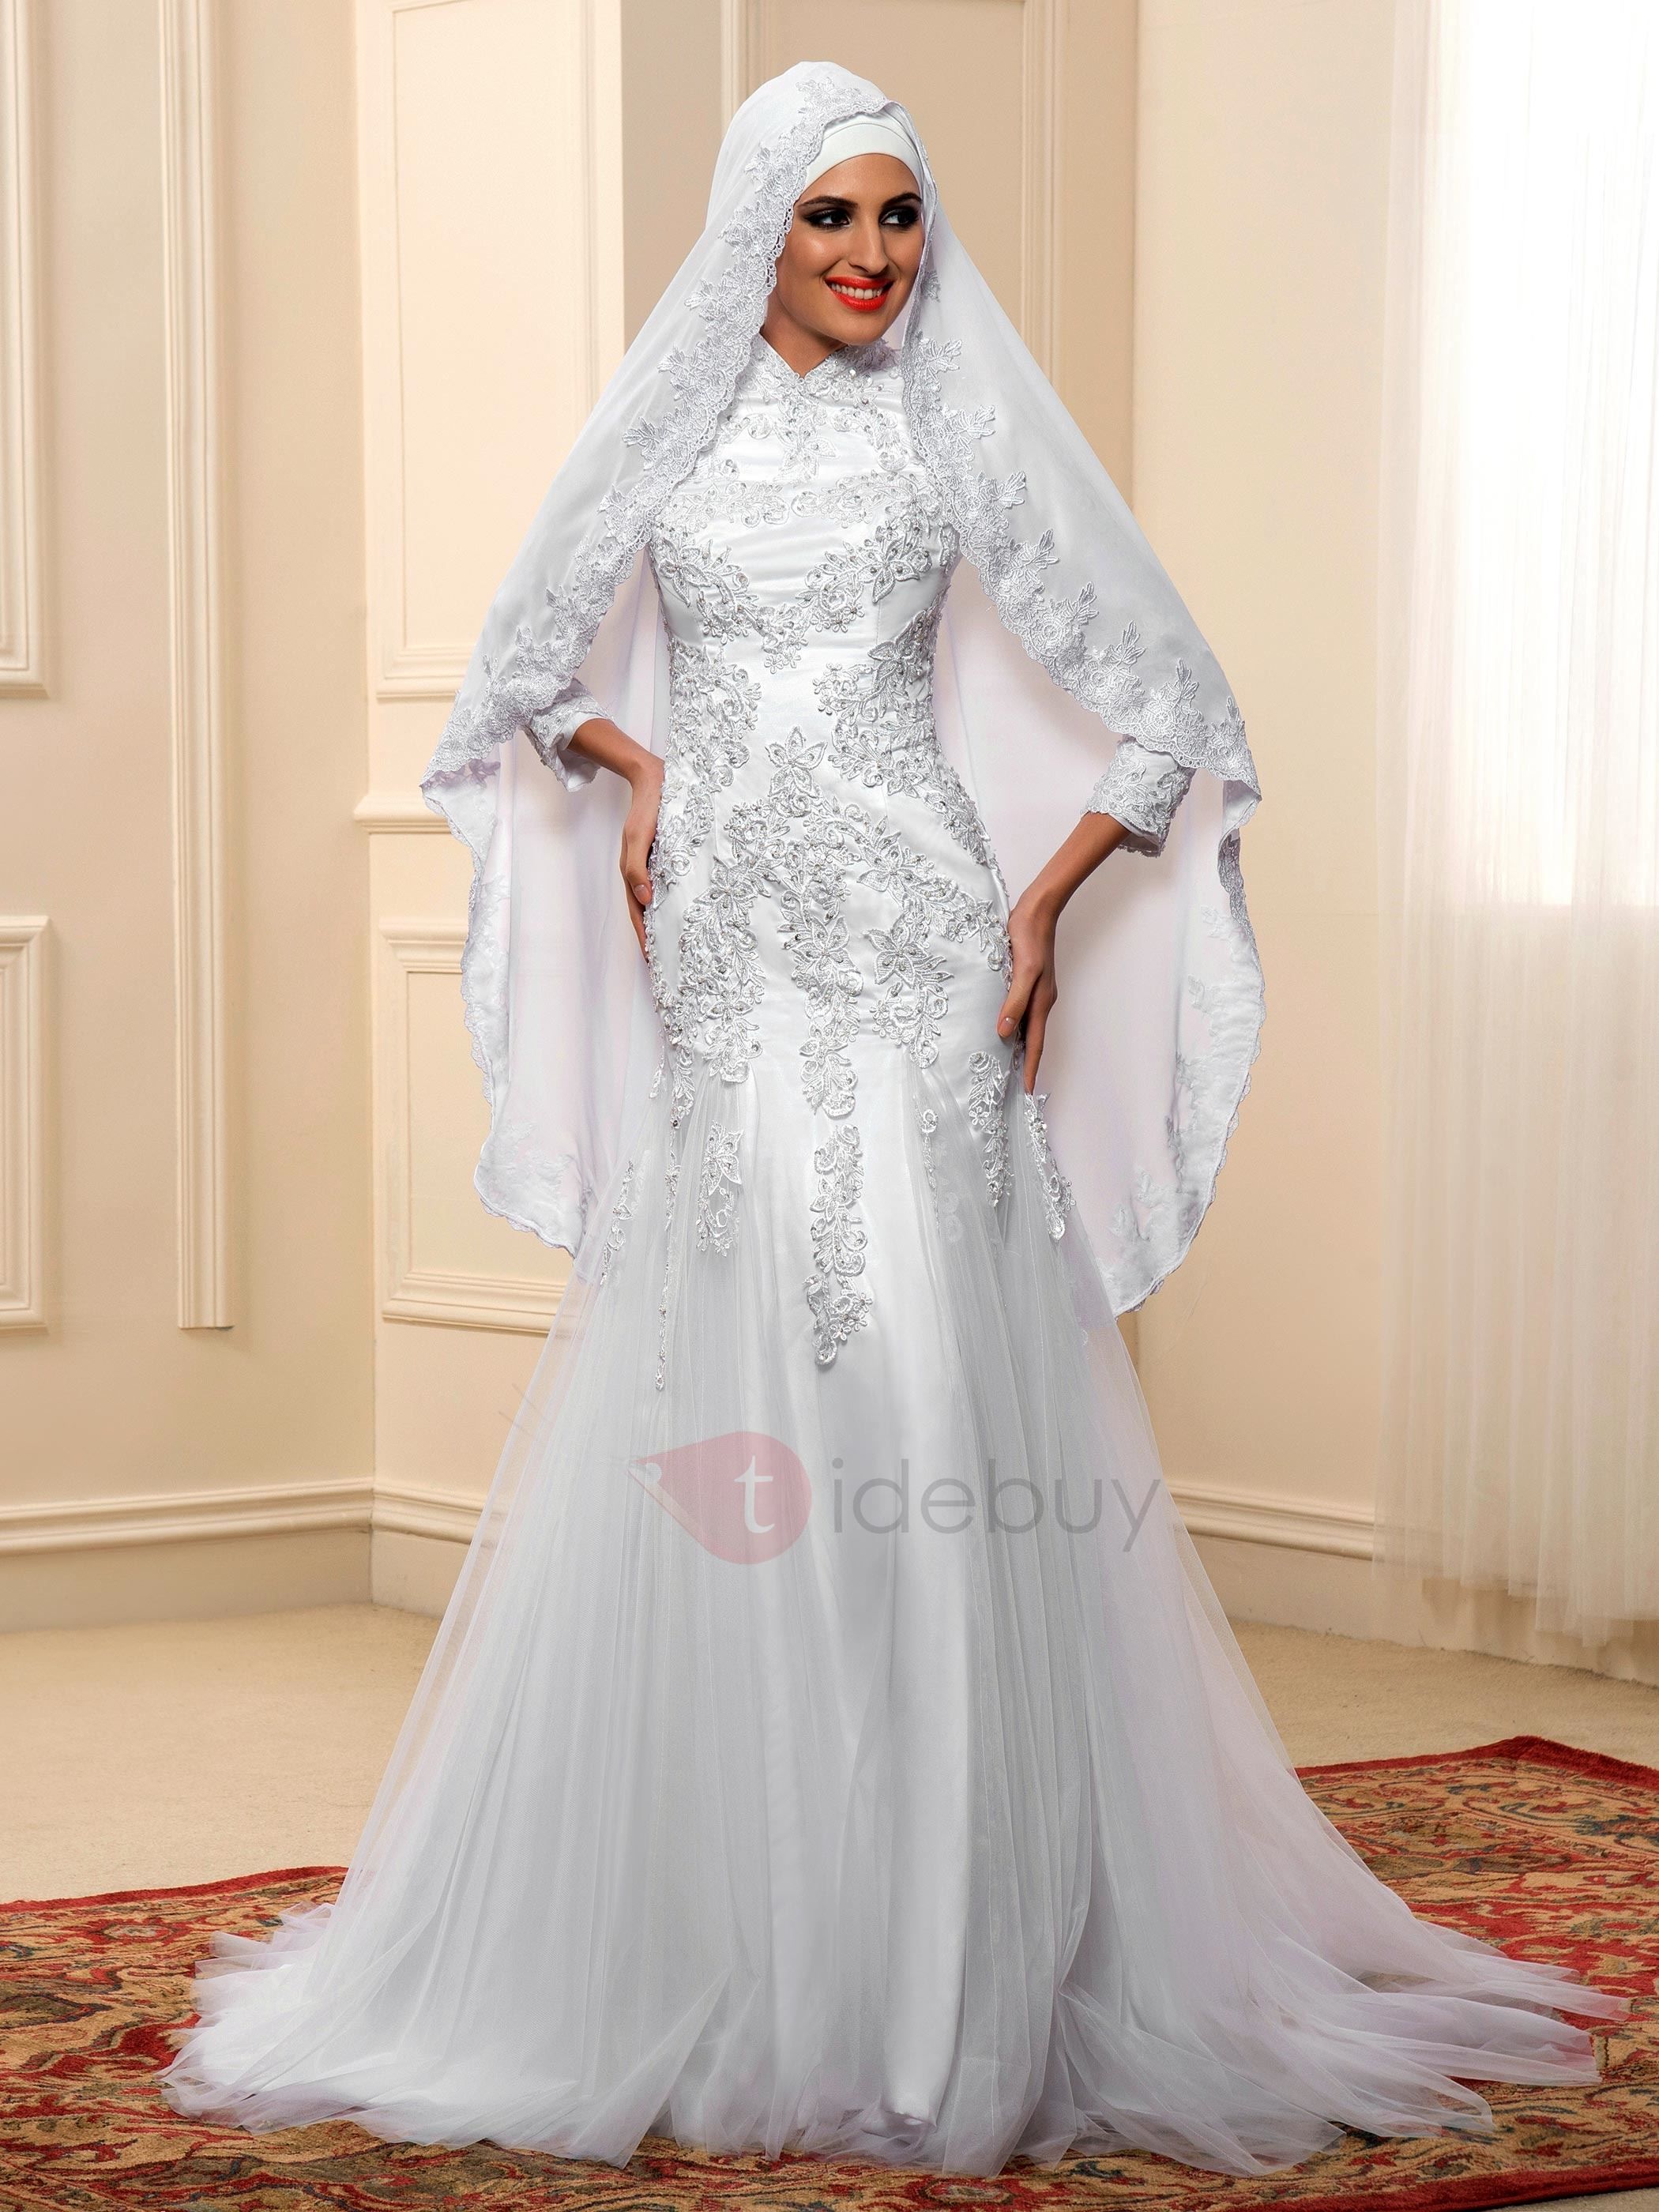 Hijab wear for muslim wedding gifts